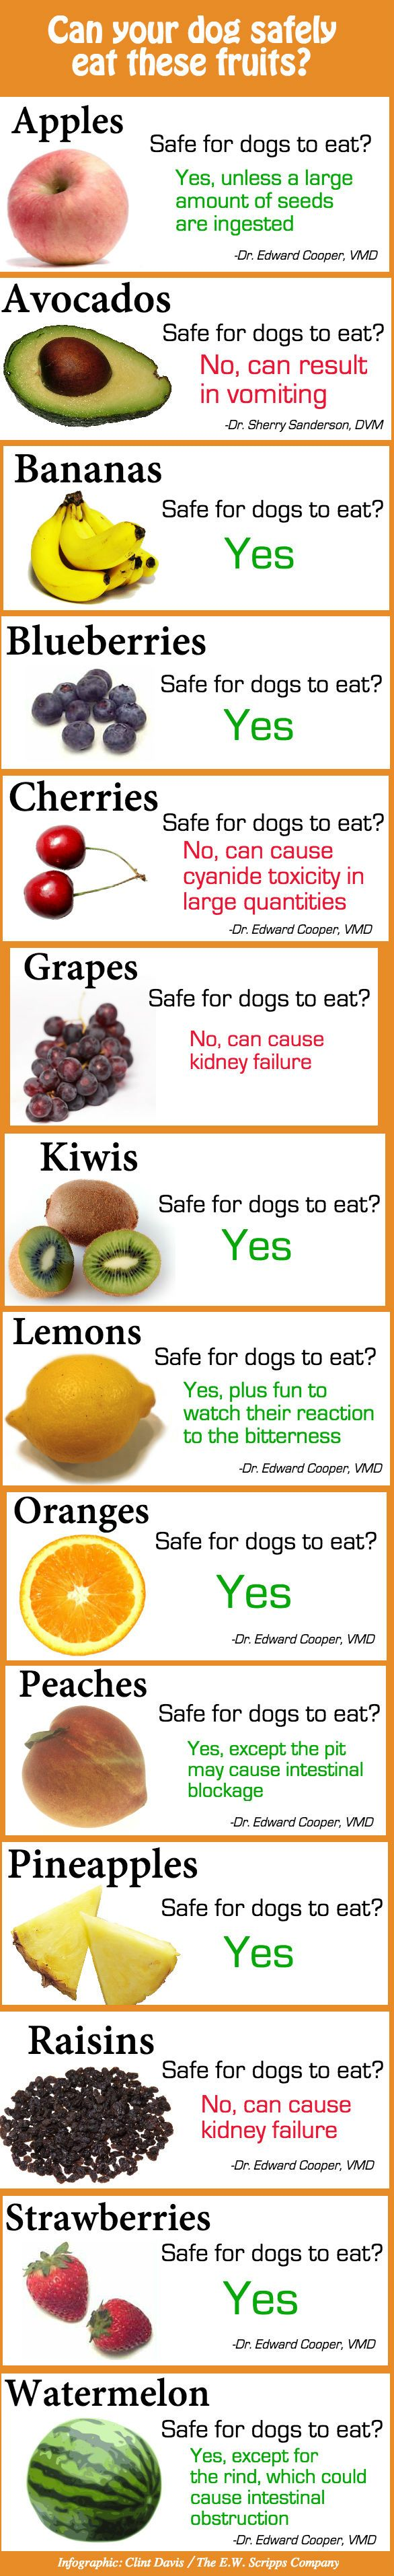 Infographic of which fruits are safe to share with pups